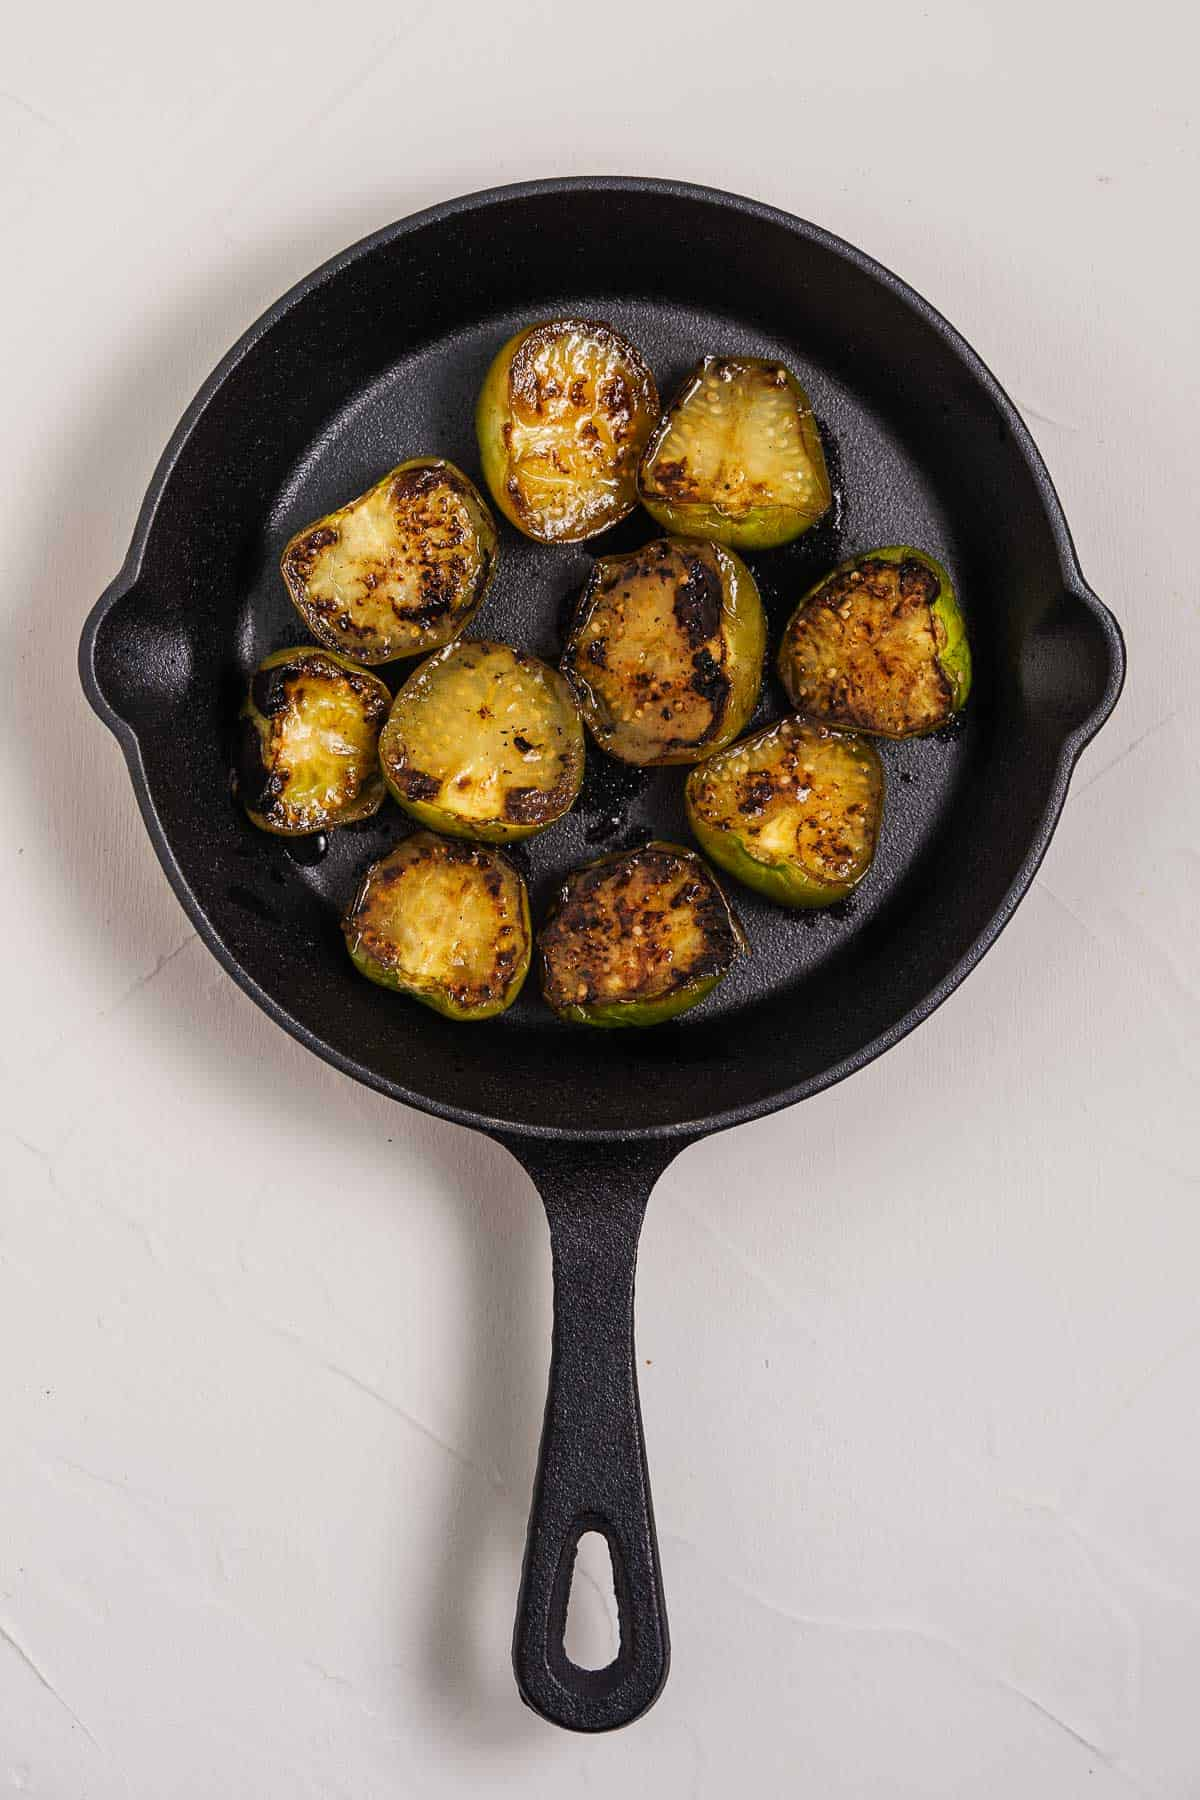 Charred Tomatillos in a Cast Iron Pan